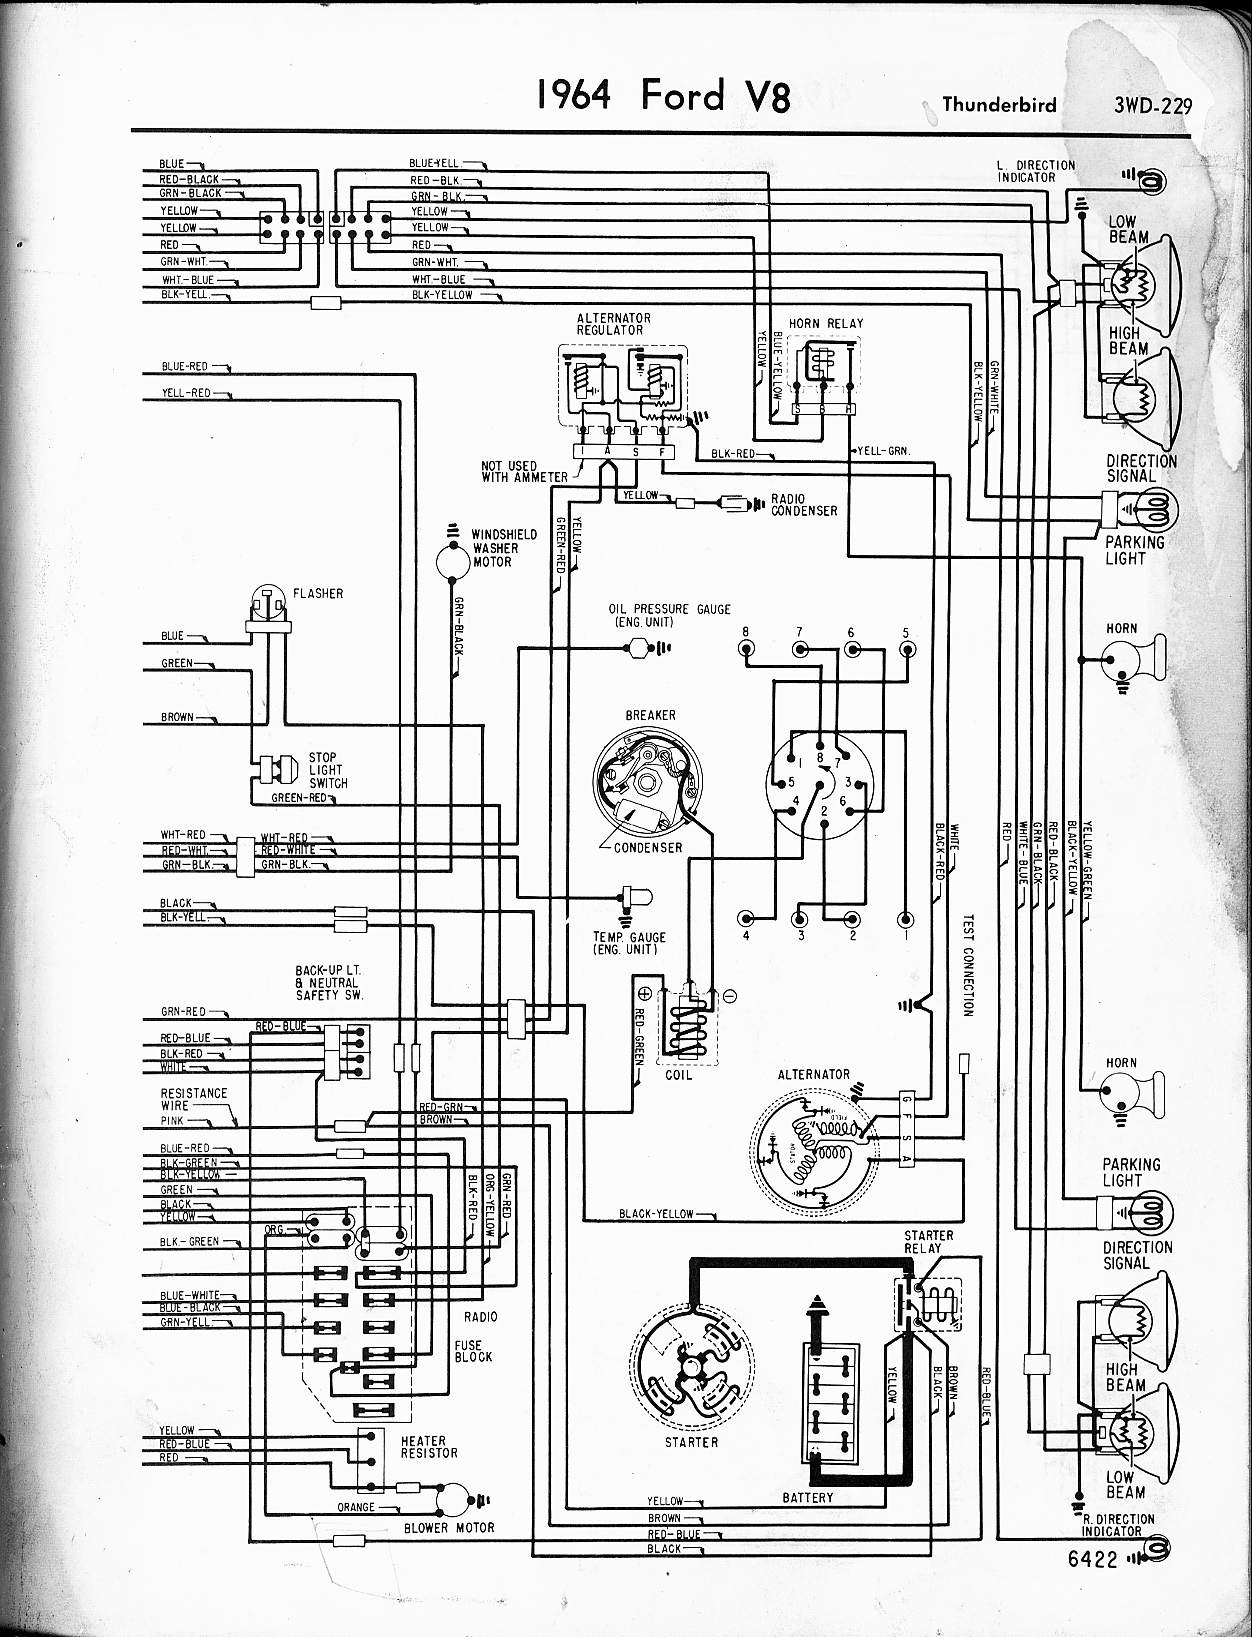 hight resolution of 1964 freightliner wiring diagram wiring diagram inside1964 freightliner wiring diagram wiring diagram expert 1964 freightliner wiring